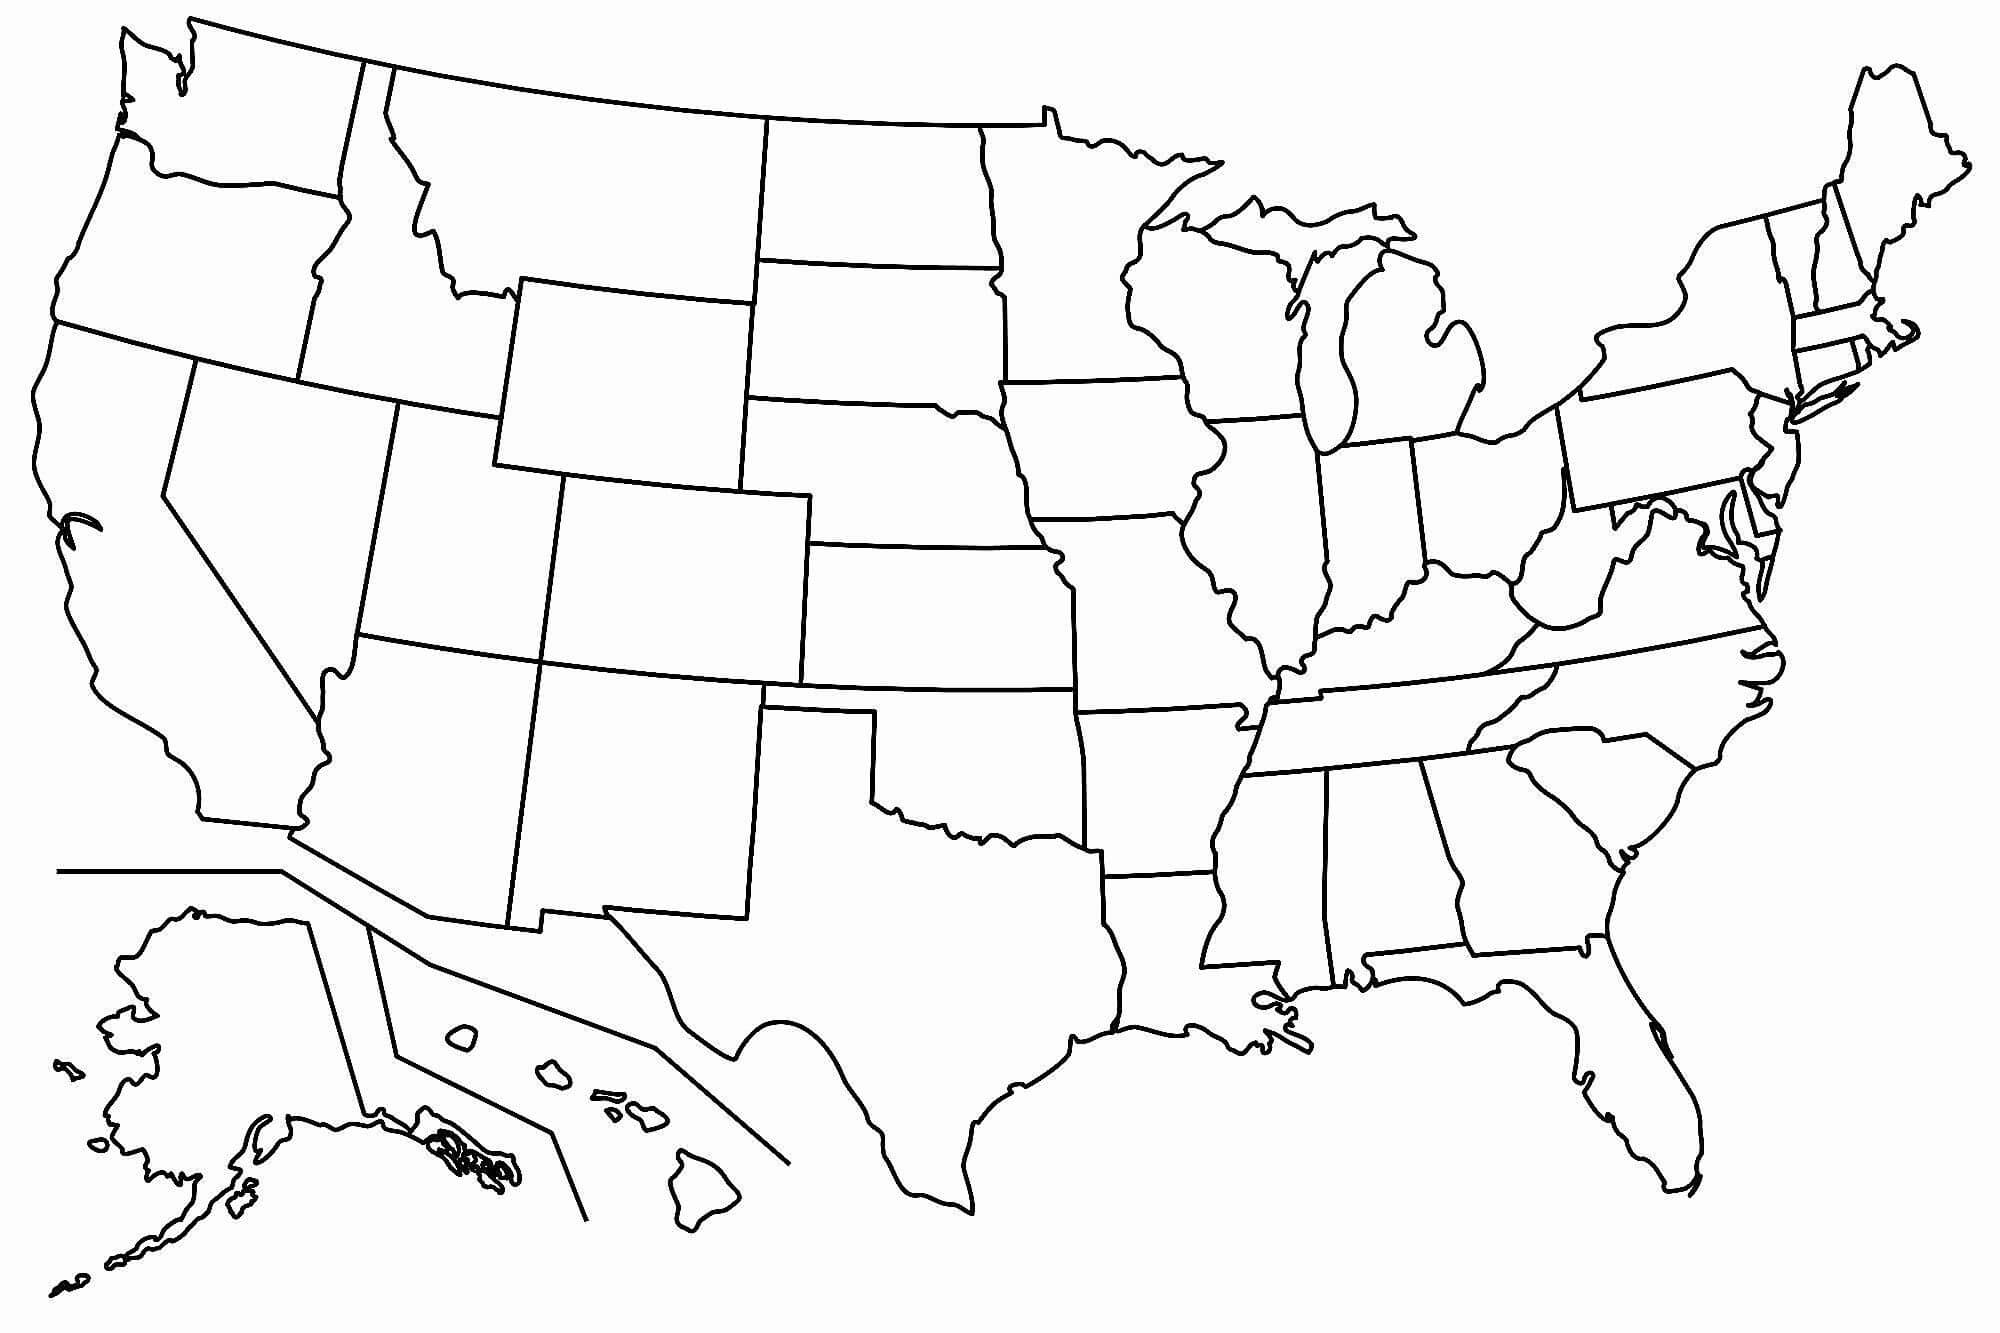 Free Printable Us Map Blank Blank Us Map Printable My Blog within United States Map Template Blank